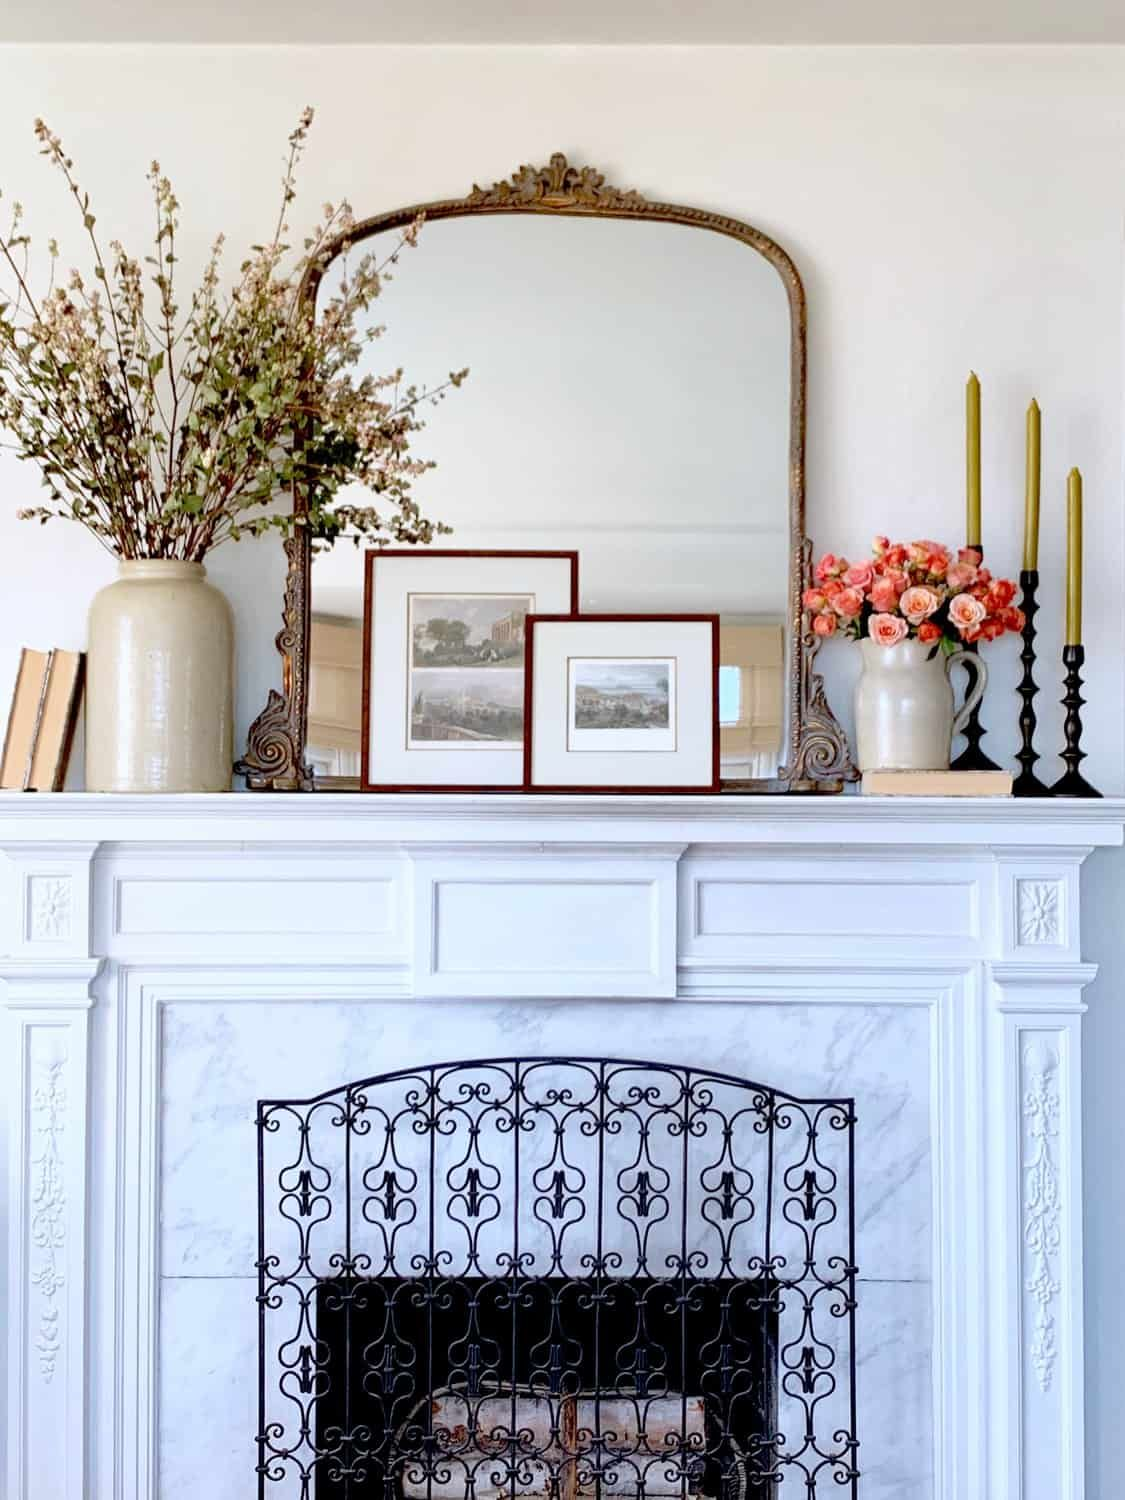 Fall Mantel Decorating Ideas To Try! - Classic Casual Home This uses vintage crock and books with newer candlesticks. #Falldecor #fallmantel #mantel #decoratingideas #manteldecor